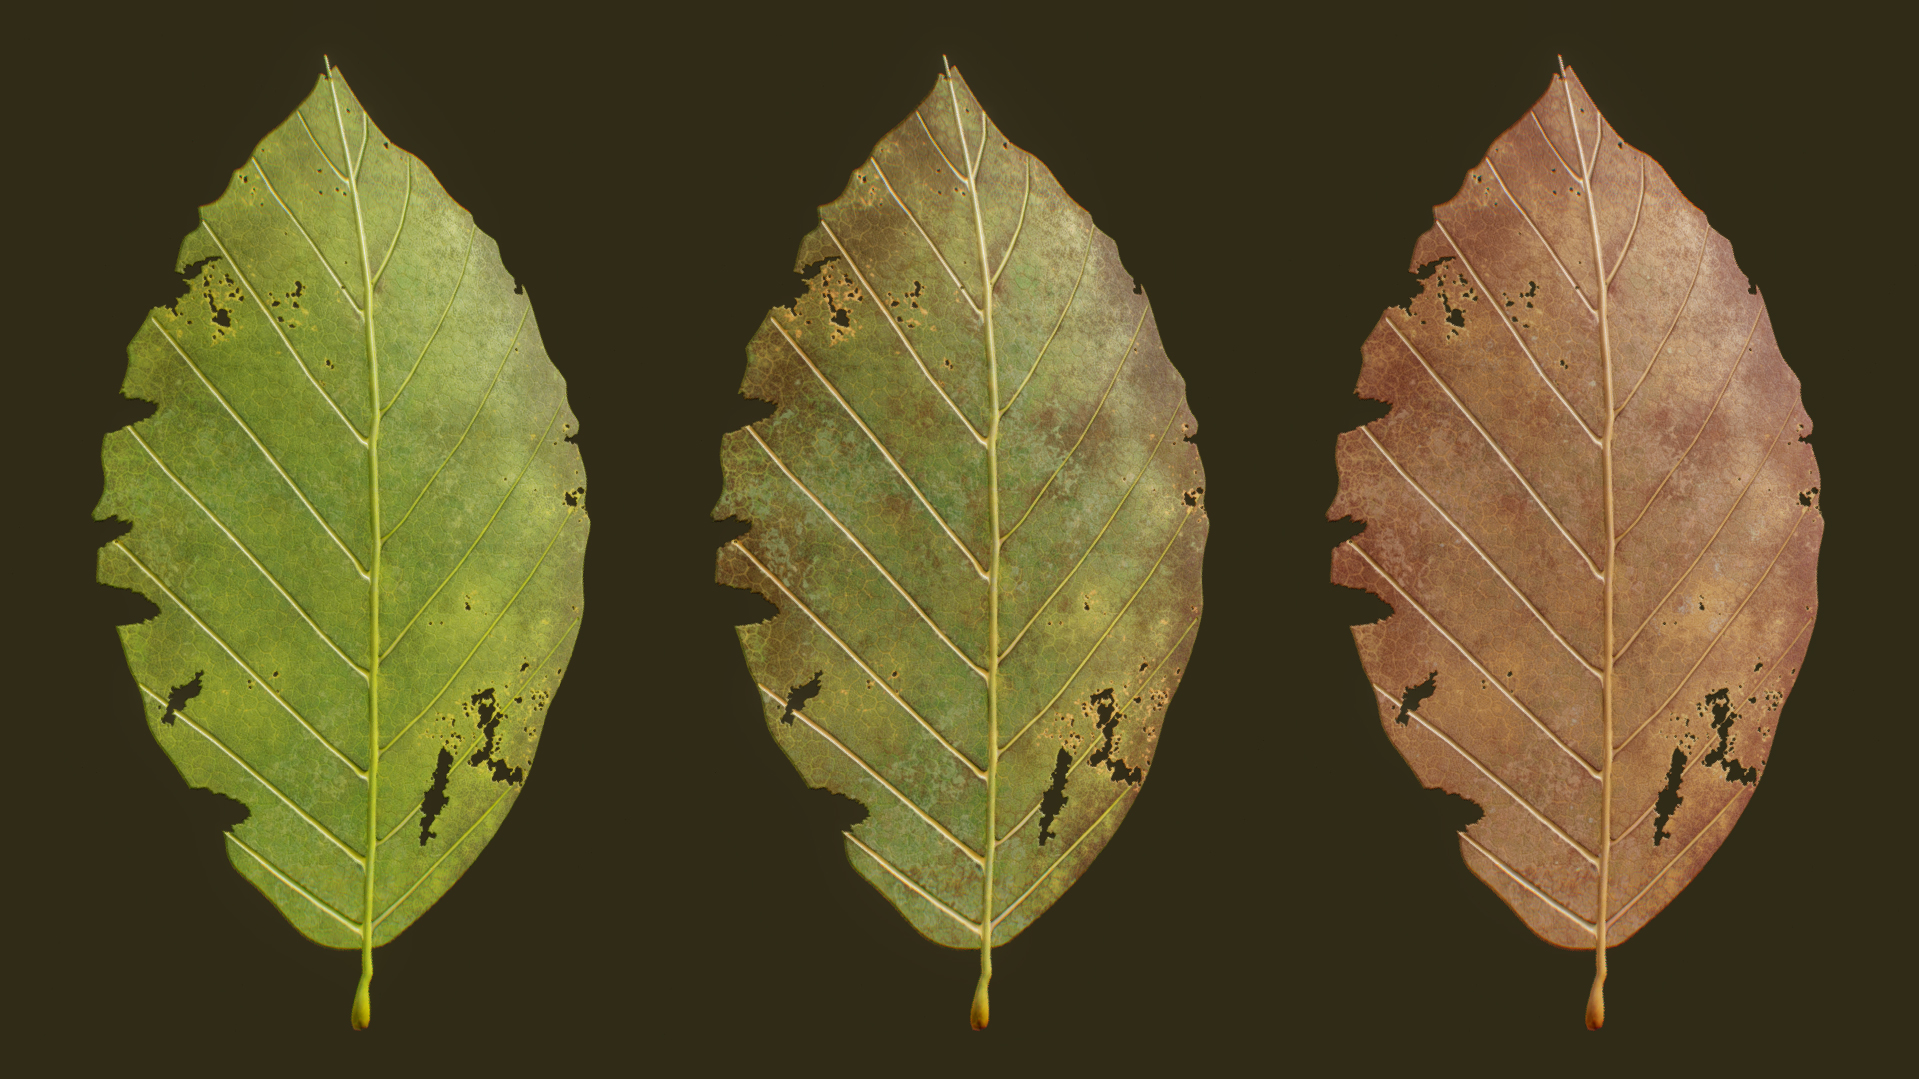 RHE_Leaves05.jpg